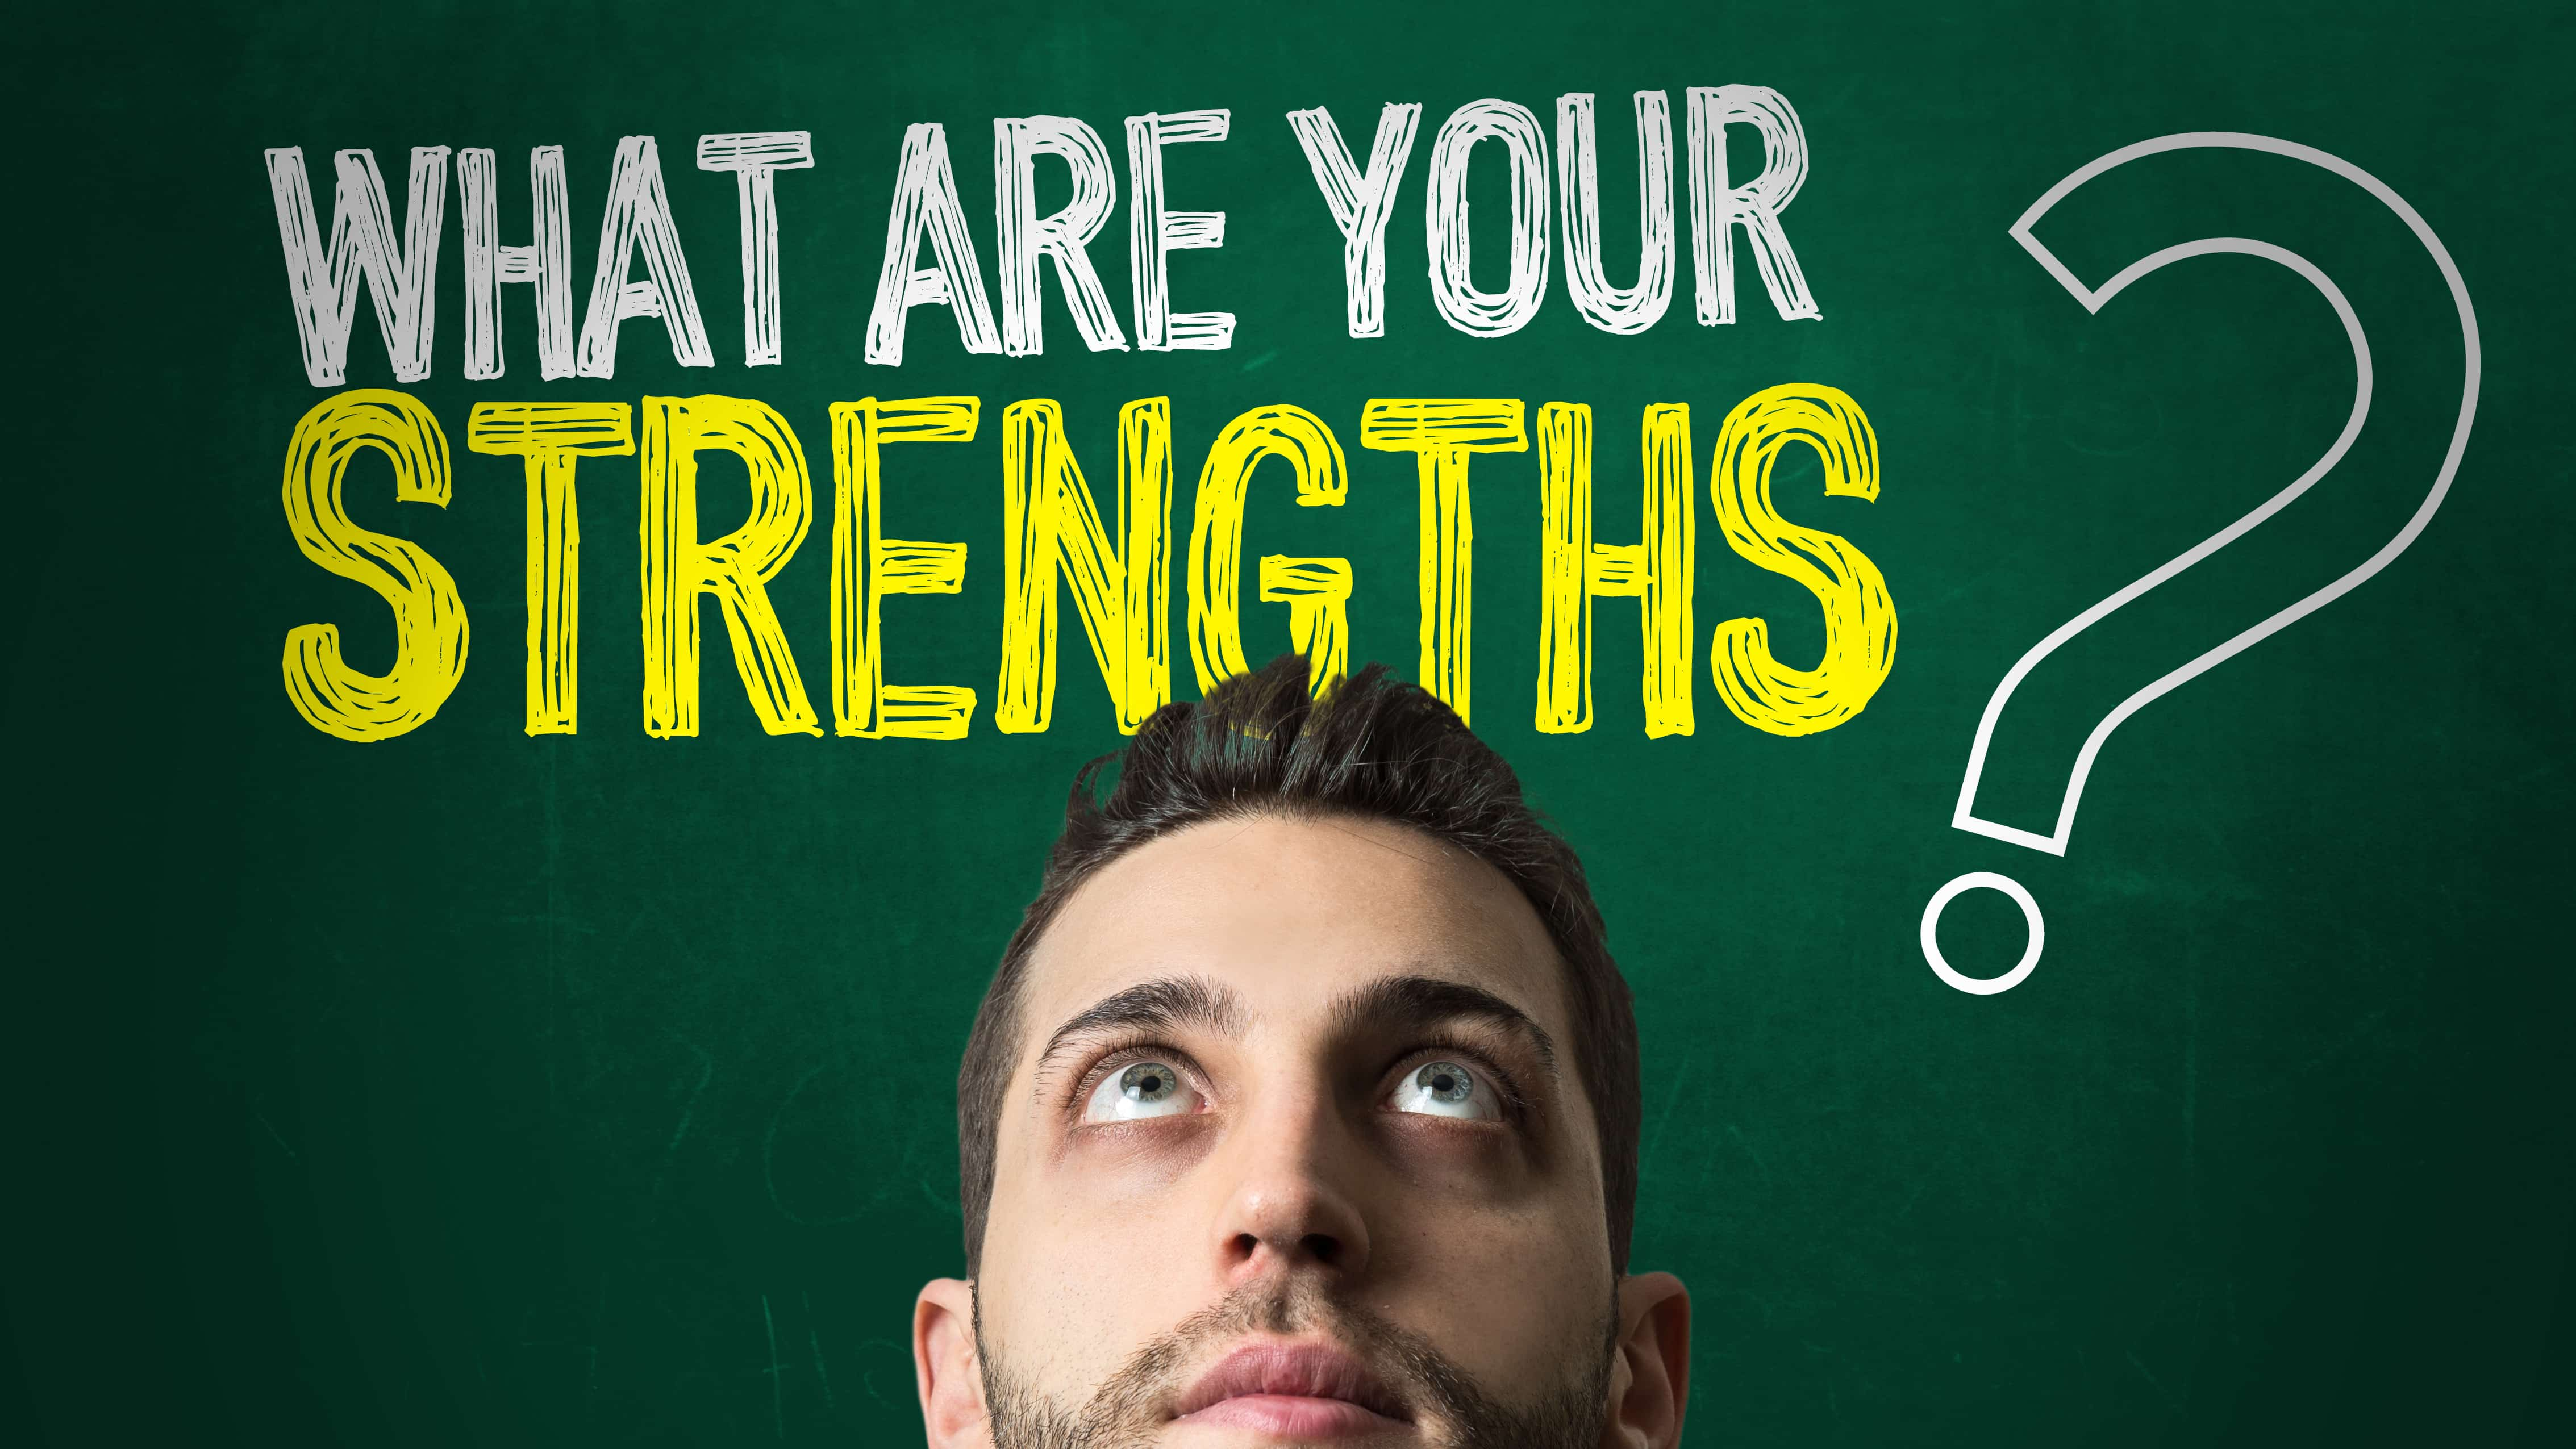 Focus on Your Strengths at Work